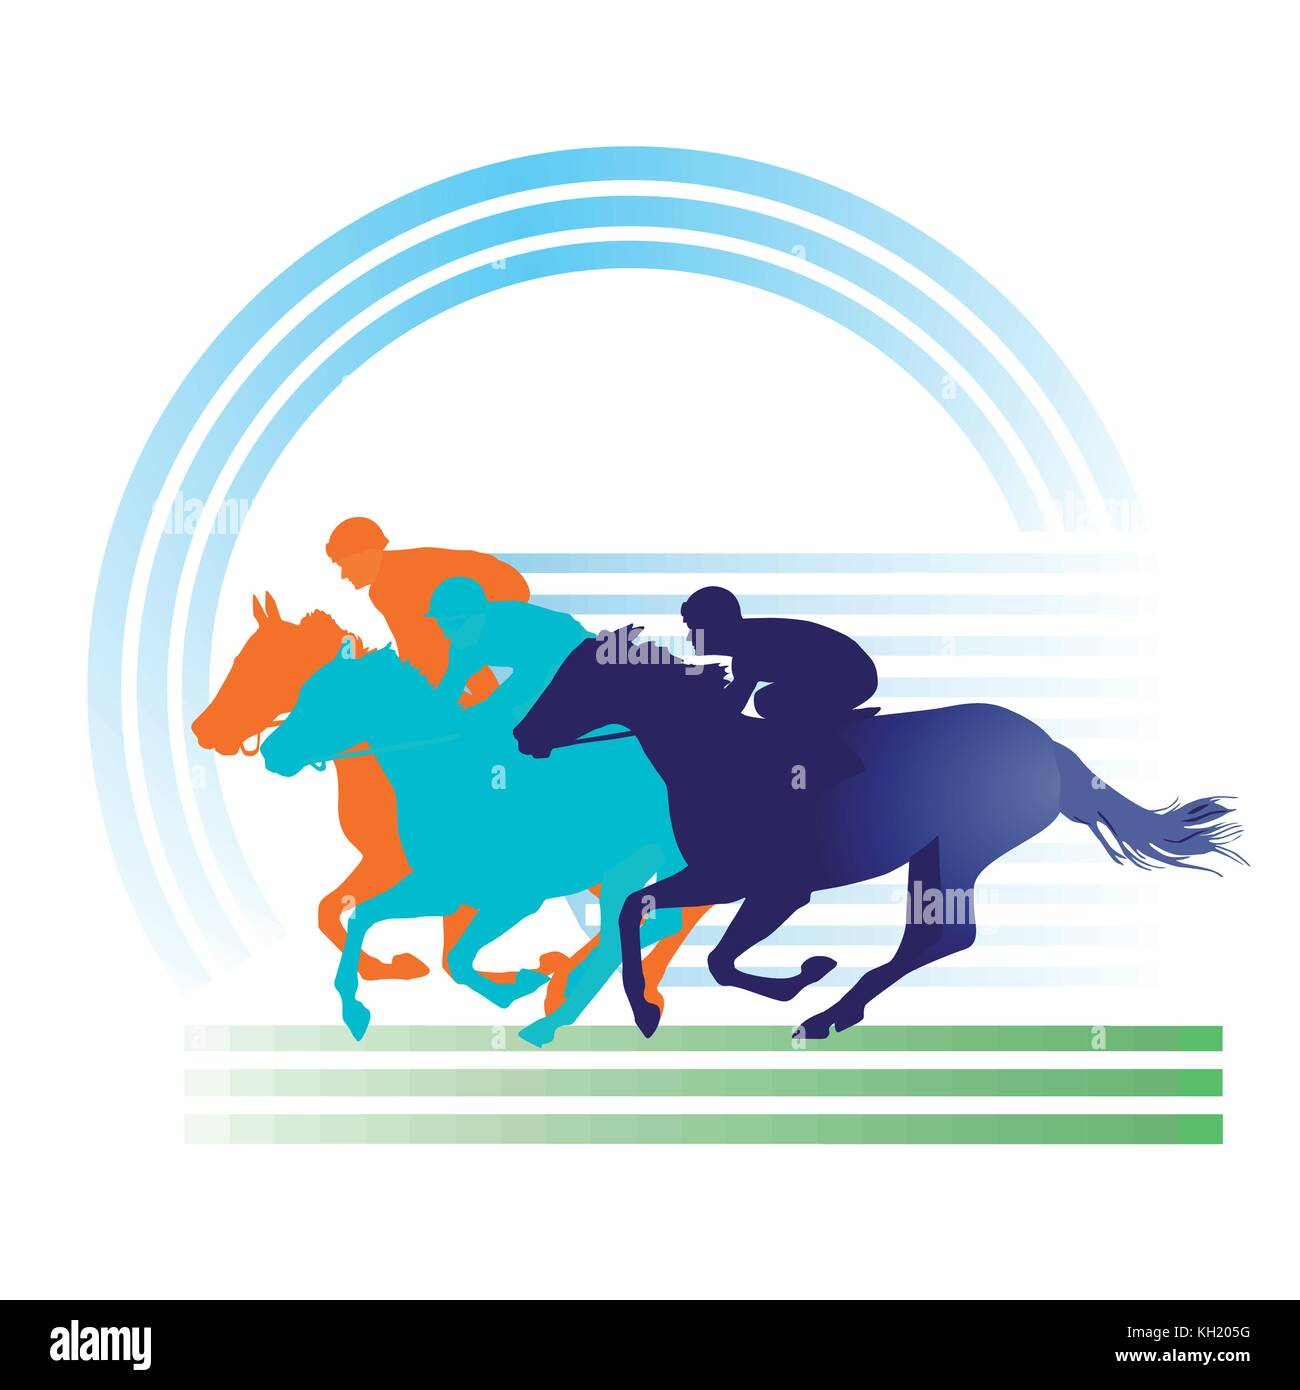 Horse Racing on the race track, equestrian sign - Stock Vector